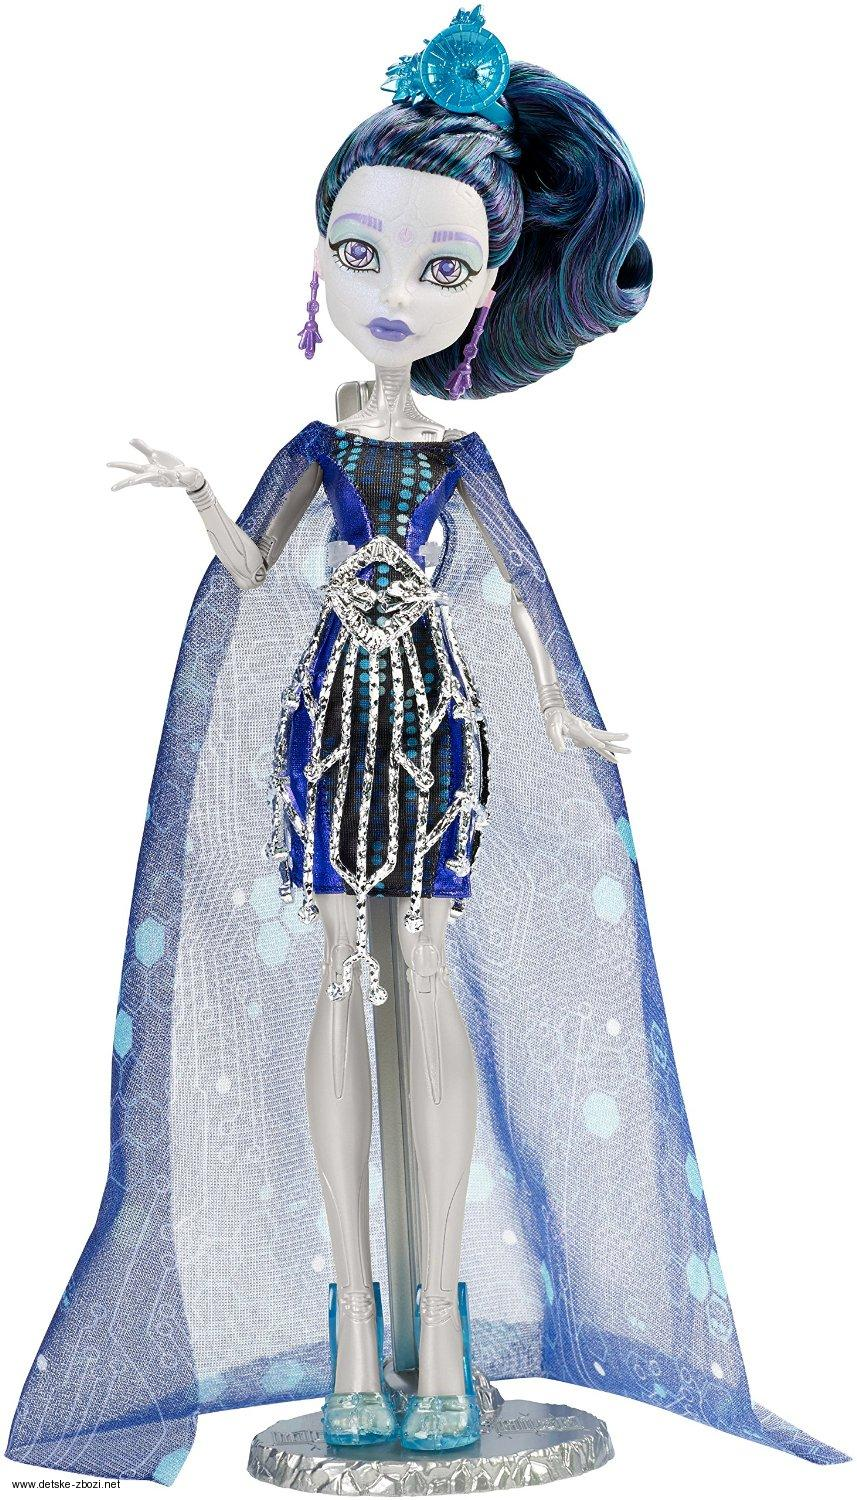 Mattel Monster High Elle Eedee Boo York 2015